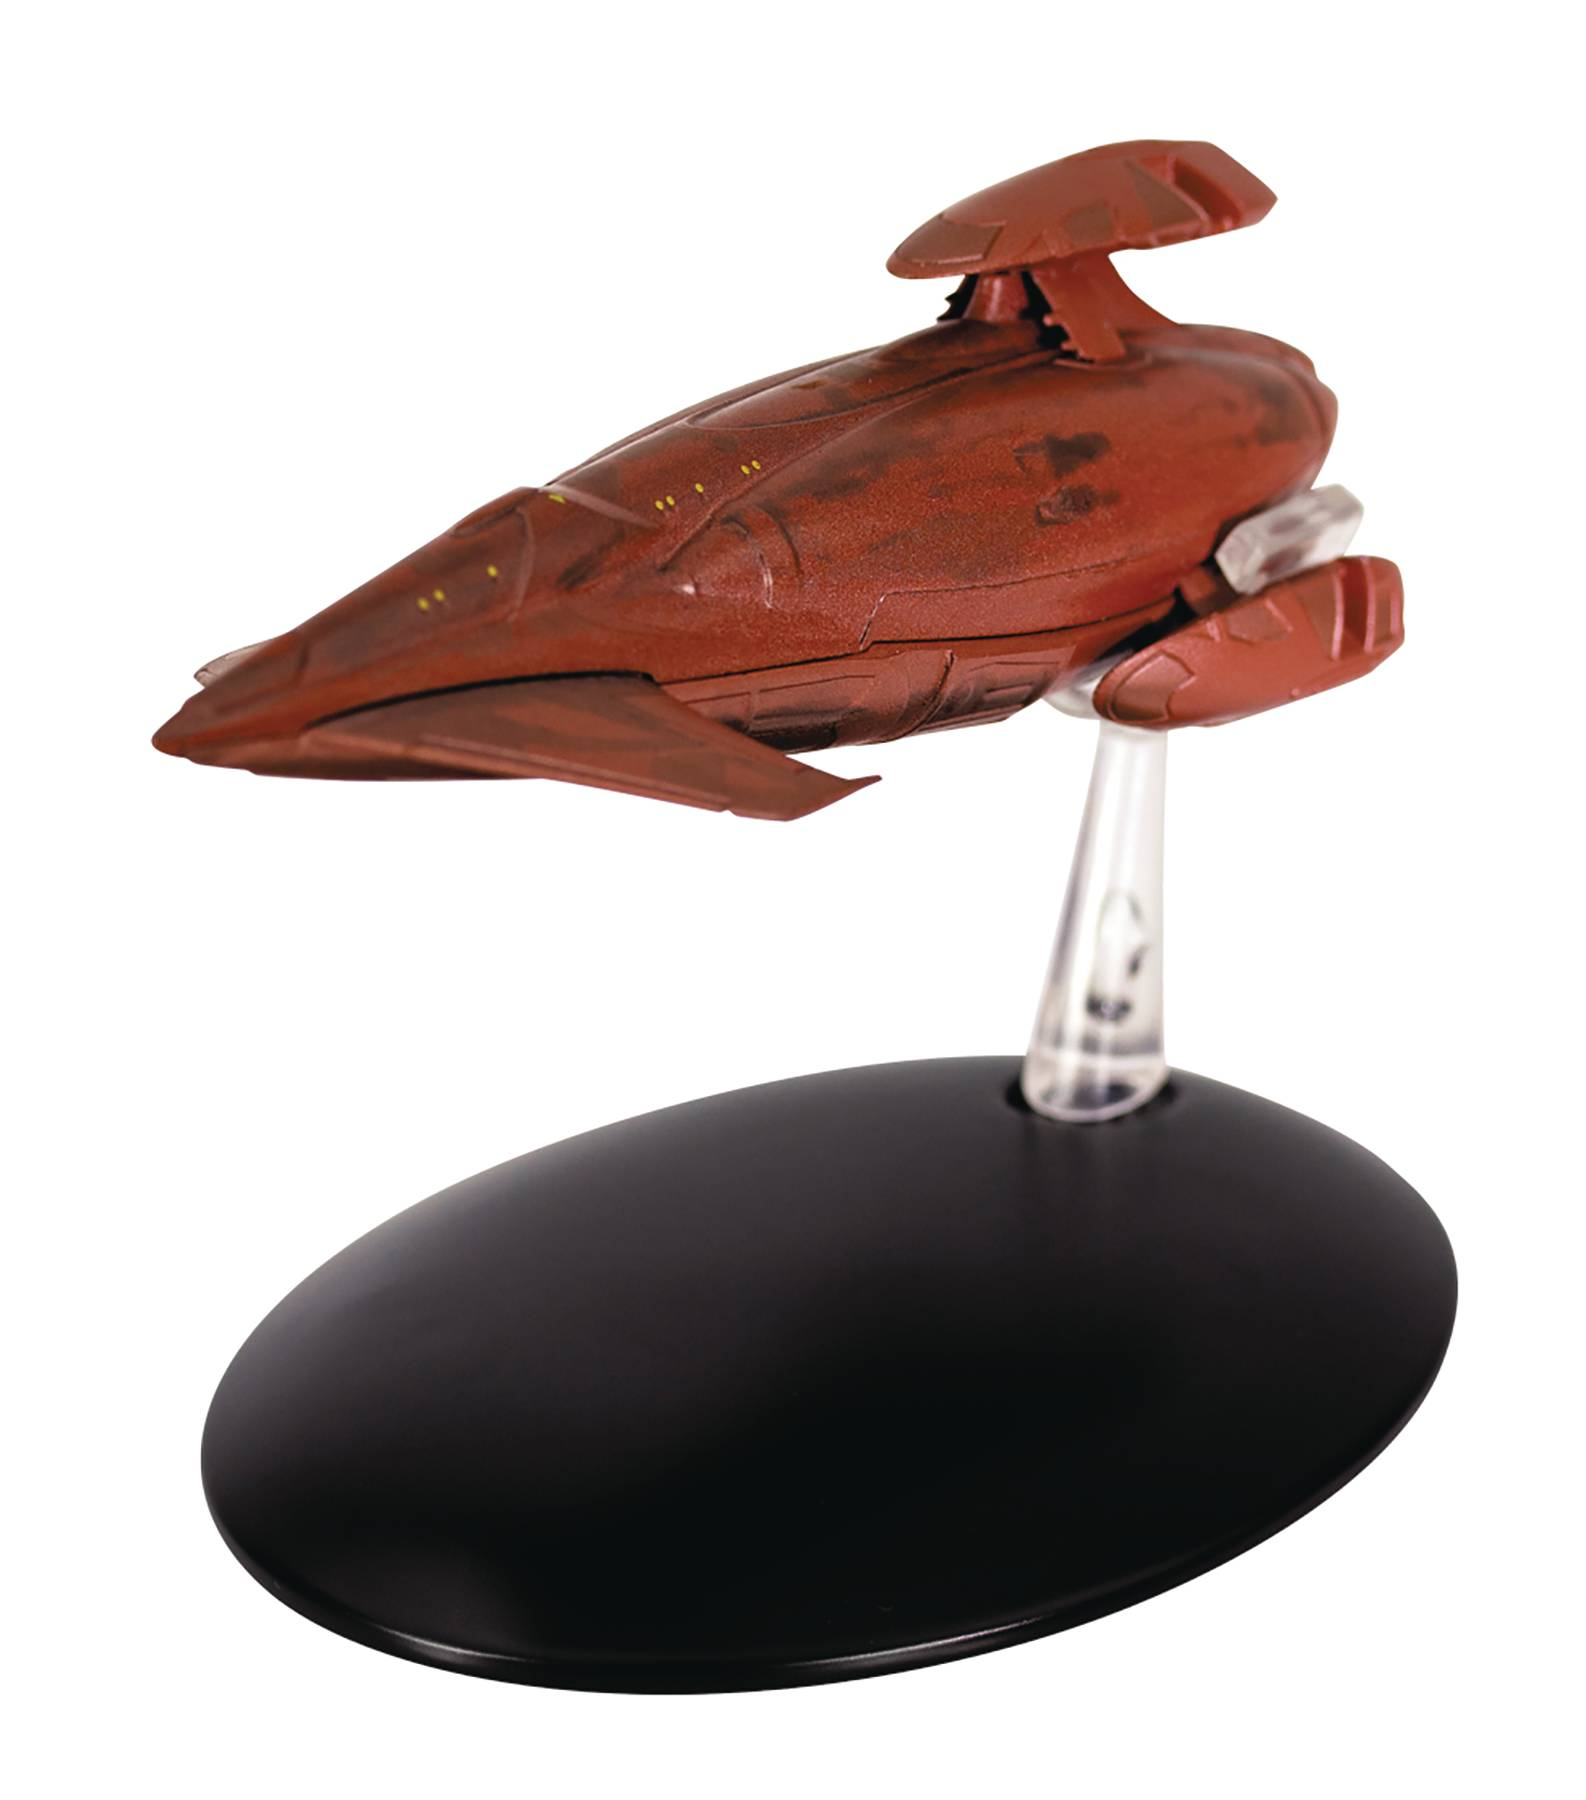 STAR TREK STARSHIPS FIG MAG #155 VULCAN DVAHL